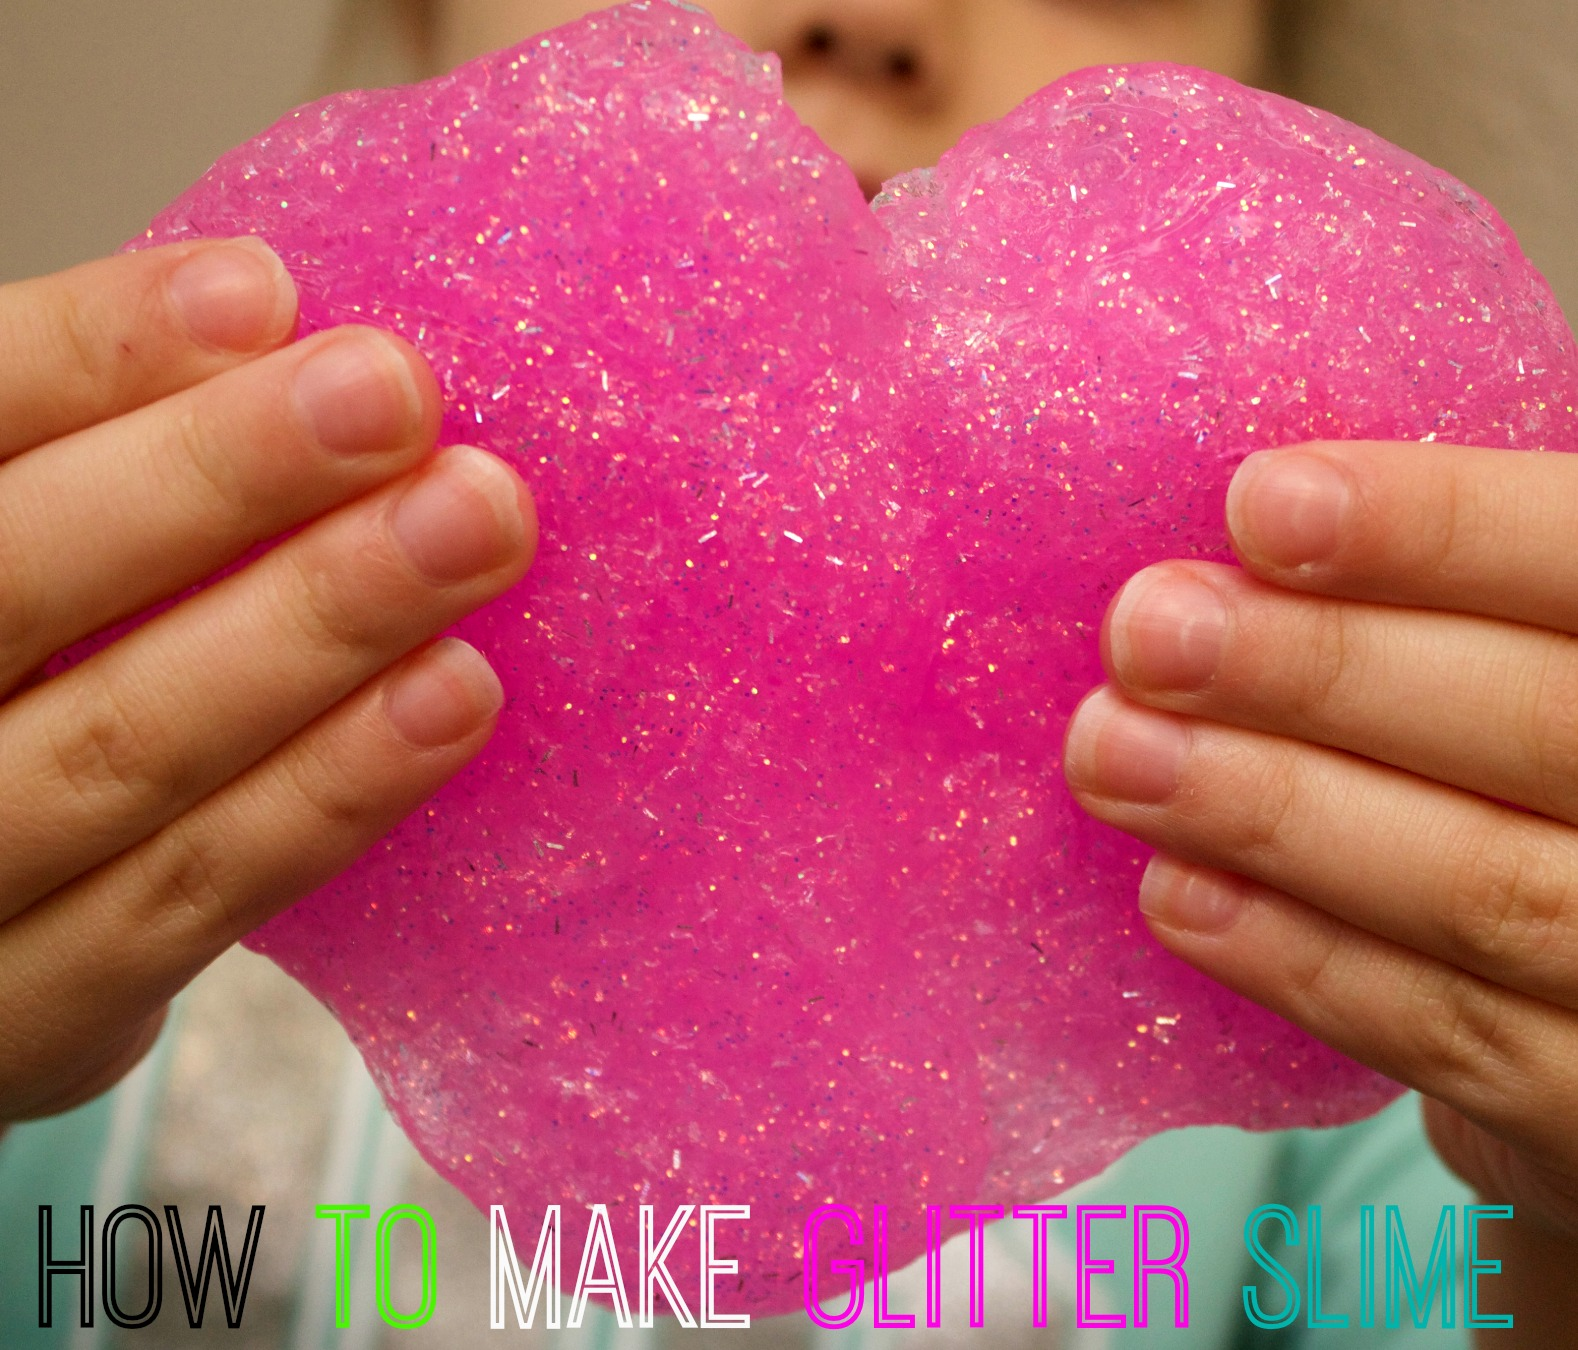 How to make slime-glitter slime with borax